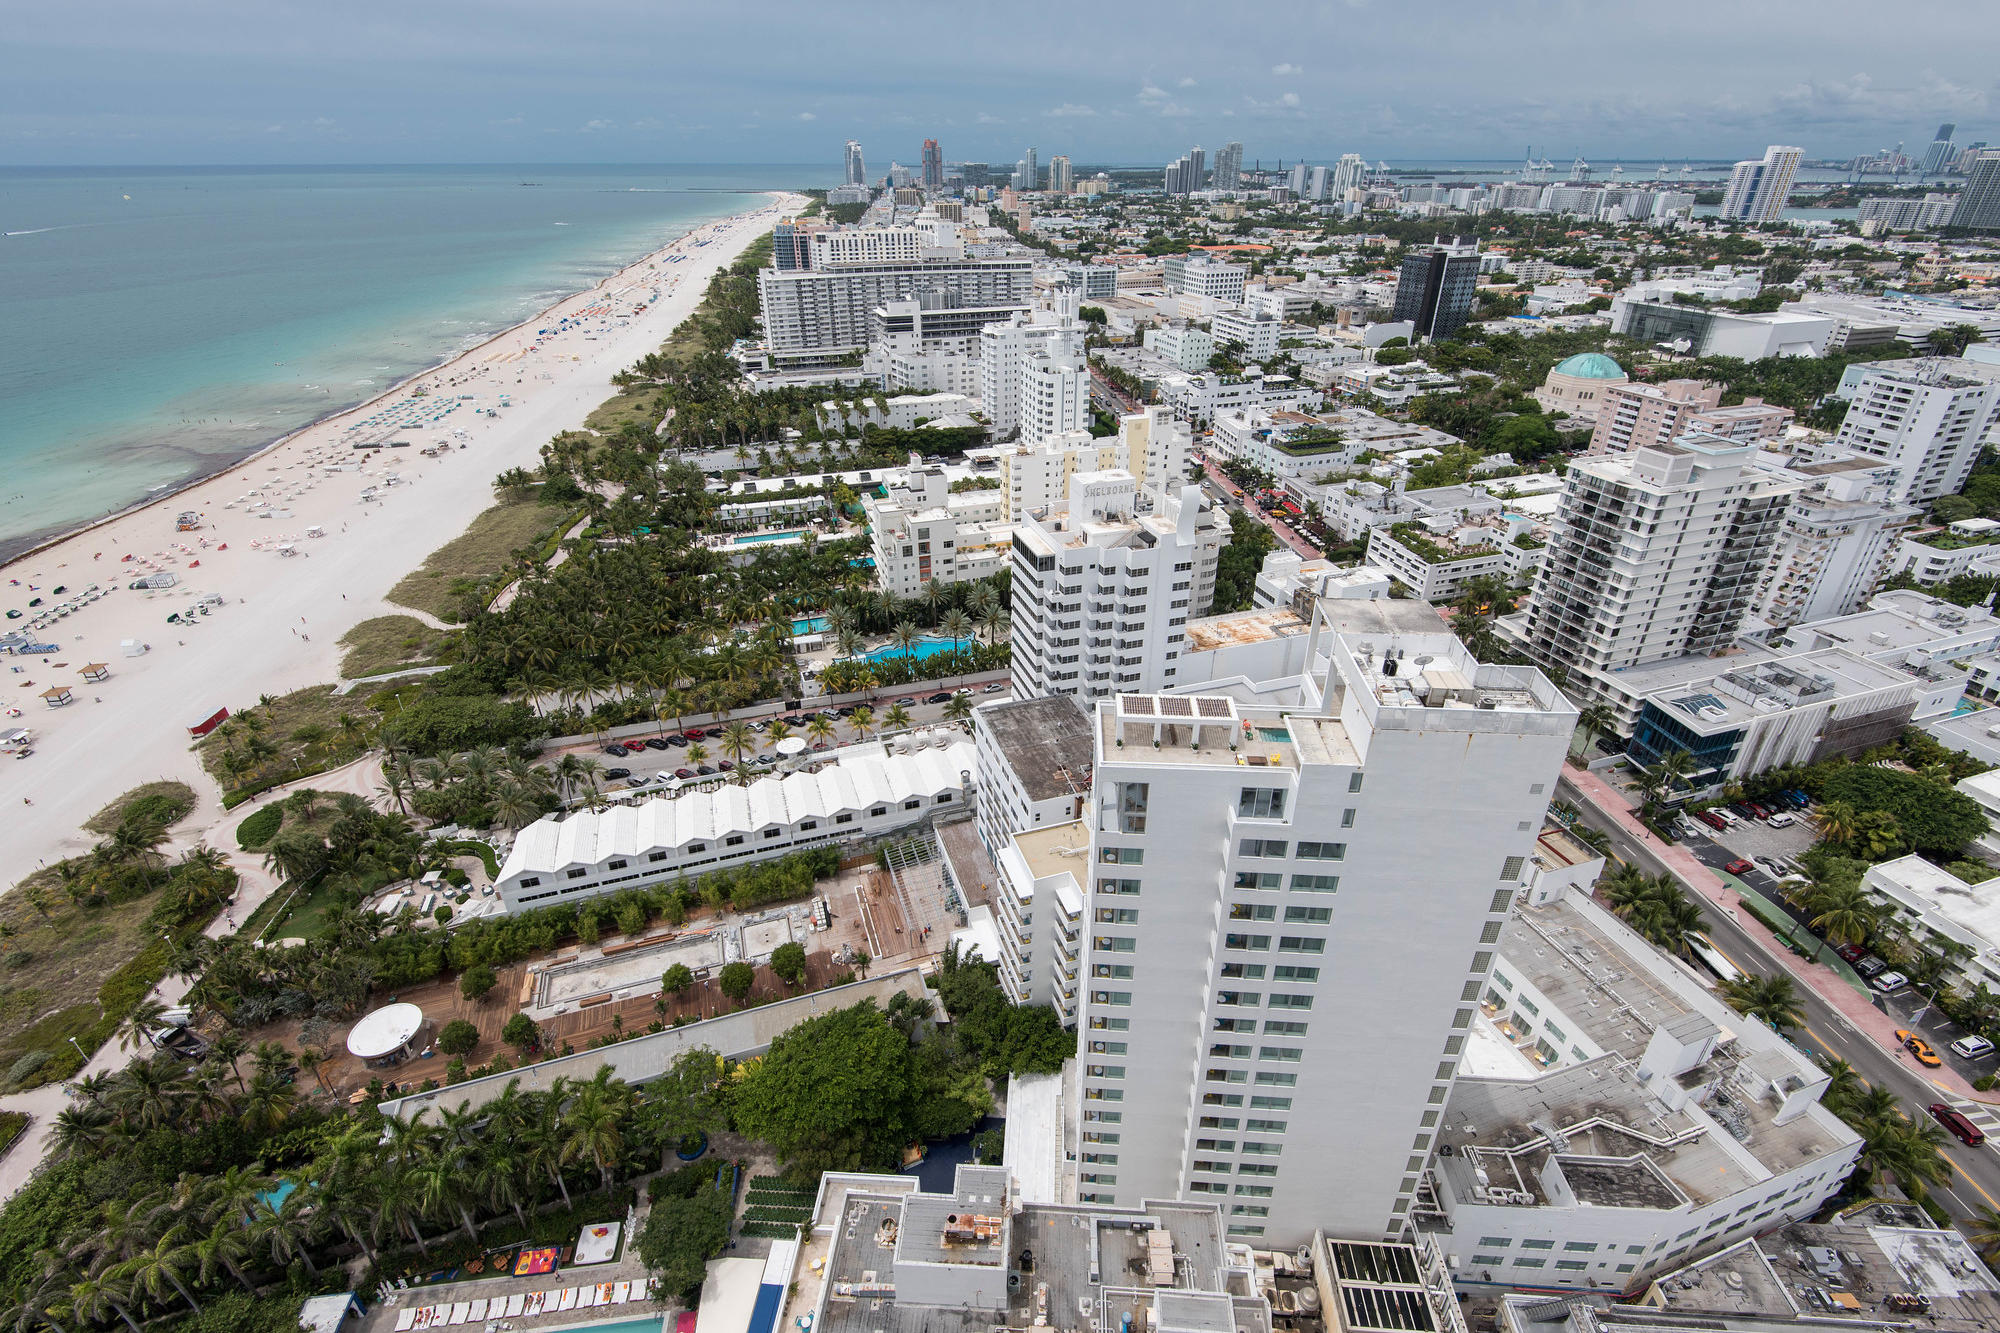 View of South Beach from The Setai Miami Beach